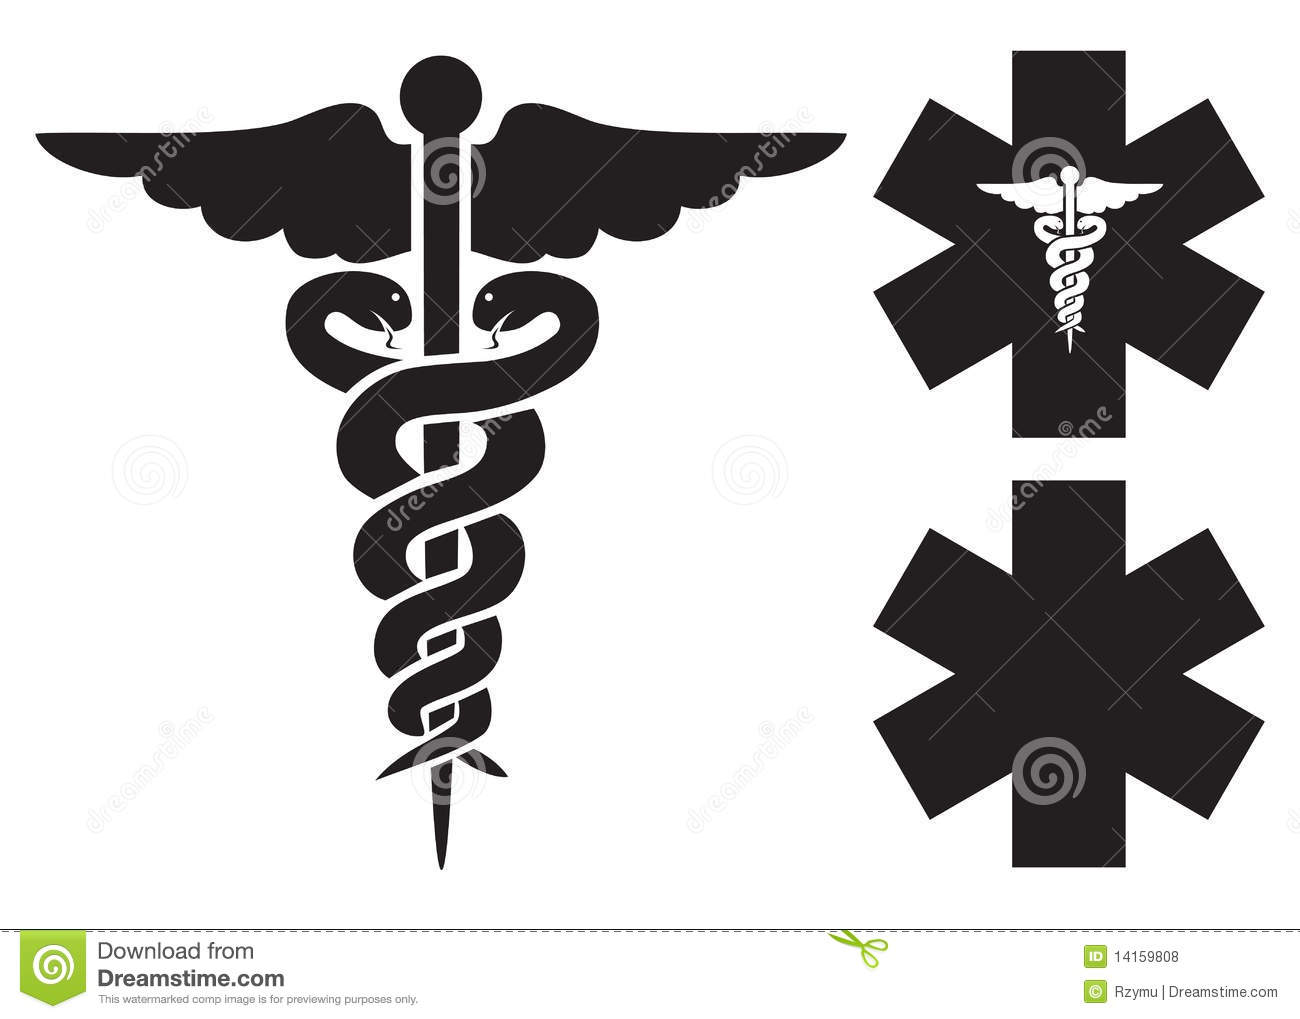 Stock Images First Aid Health Symbol Illustration Icon Medical Heart Heartbeat Line Image31624094 in addition November National Diabetes Awareness Month additionally Page also Royalty Free Stock Photos Medical Signs Image14159808 as well First Aid. on emergency medical care symbol